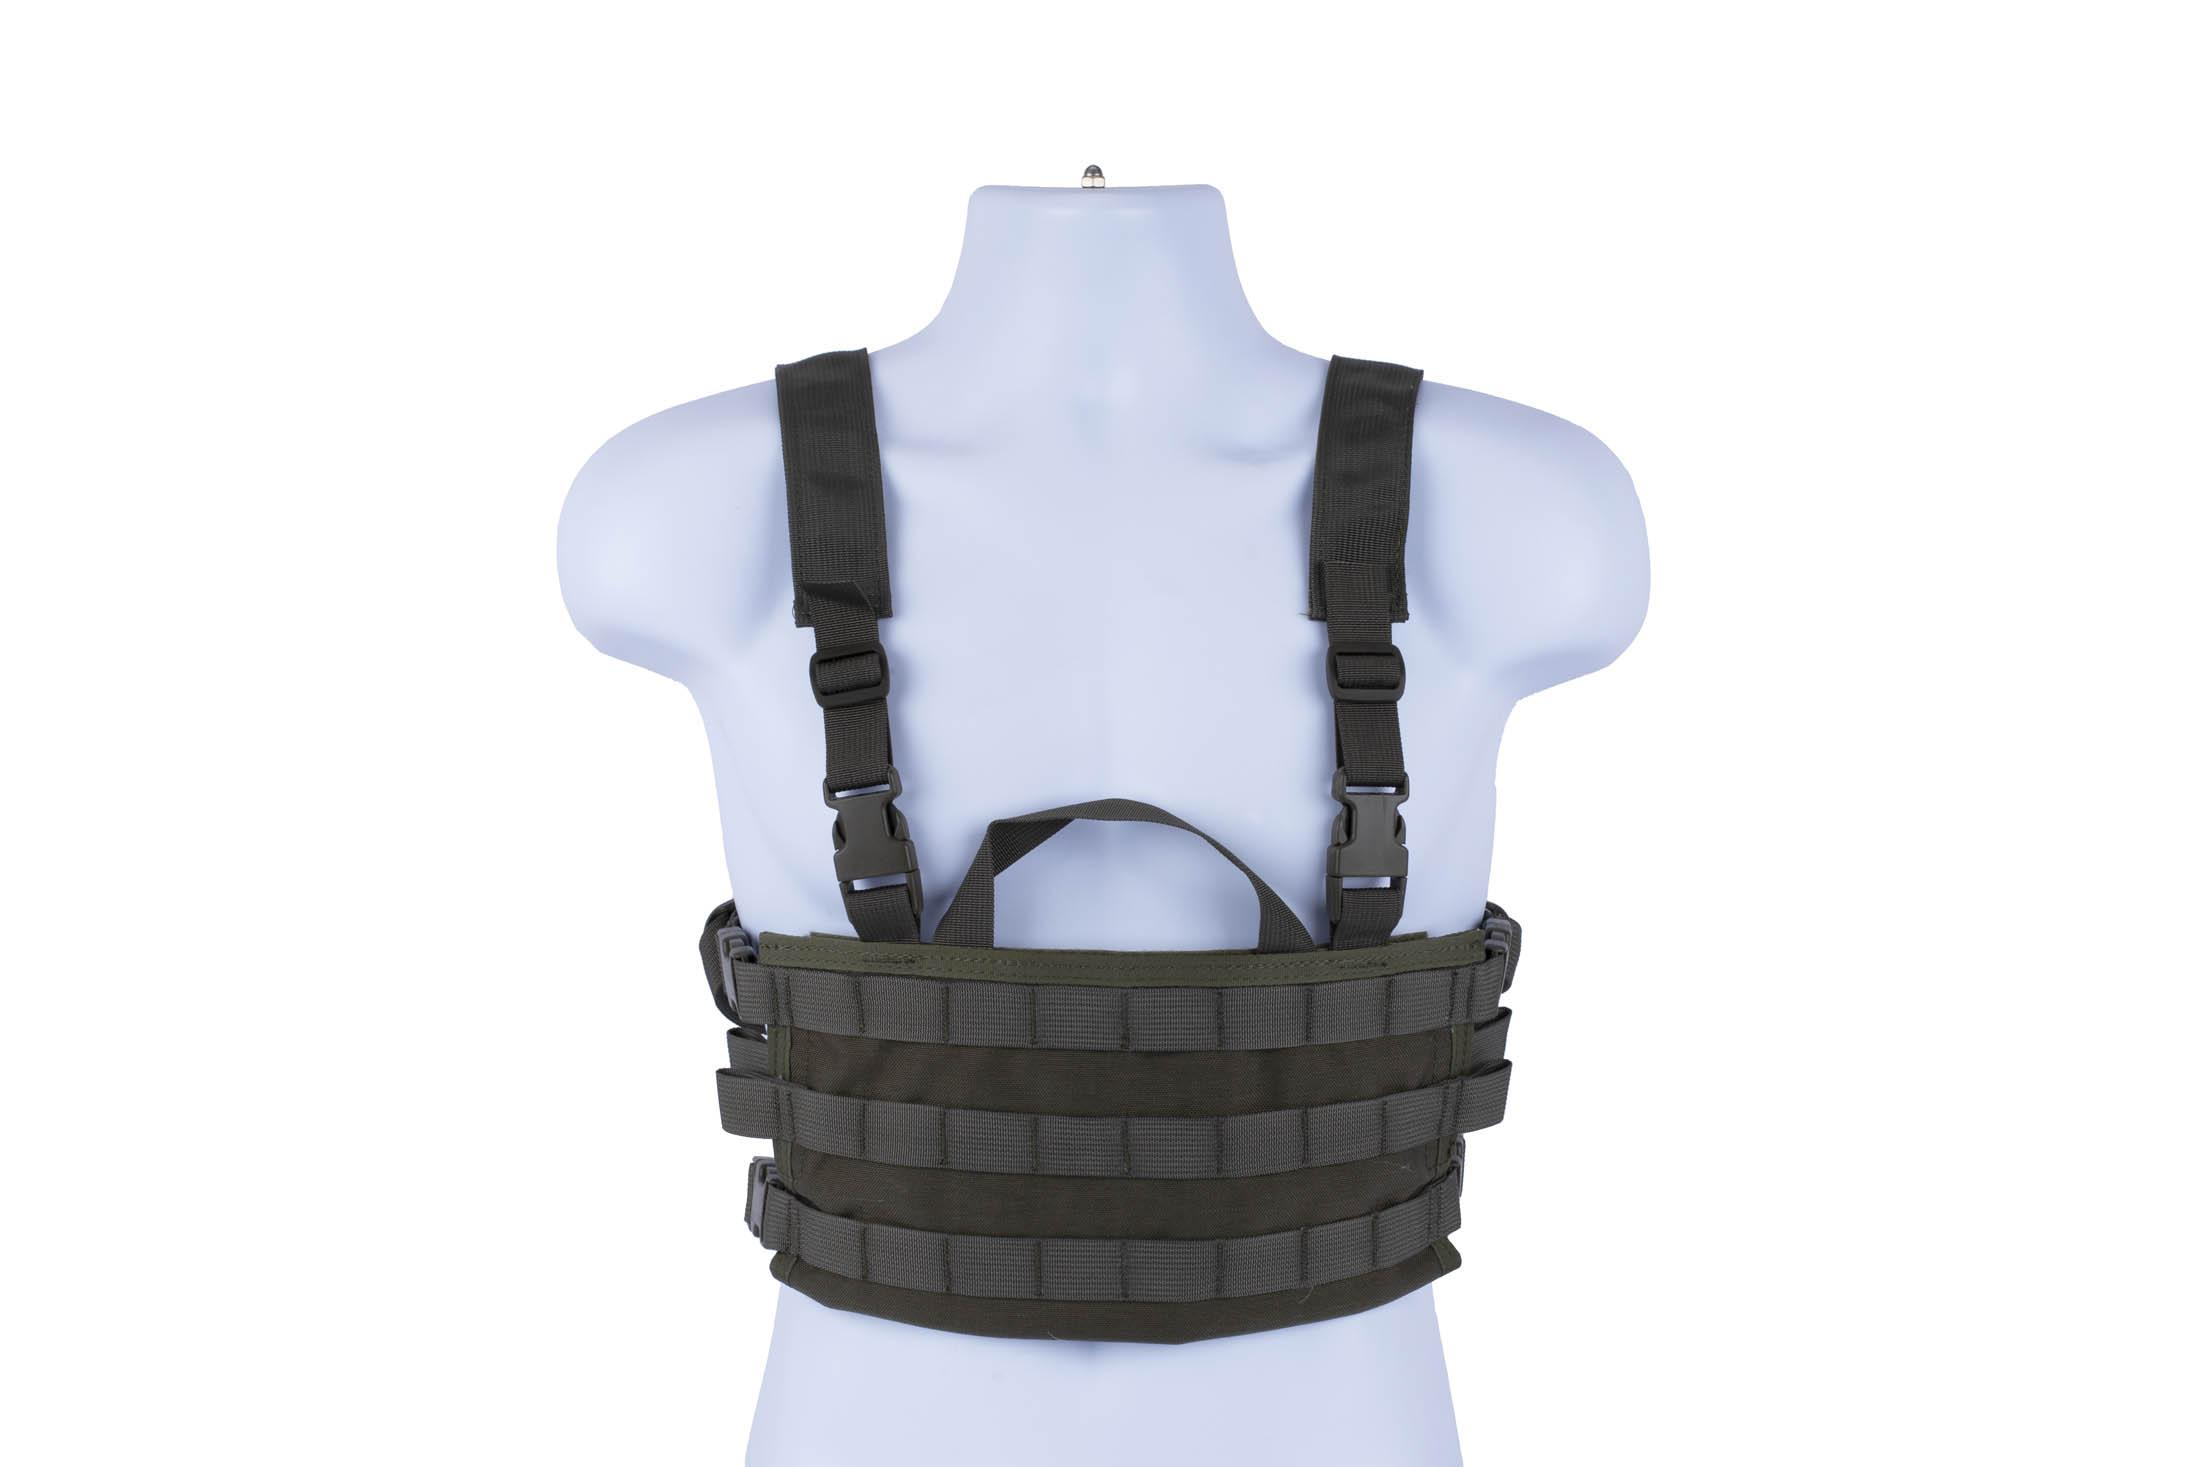 High Speed Gear AO chest rig is a lightweight modular load bearing vest in olive drab green